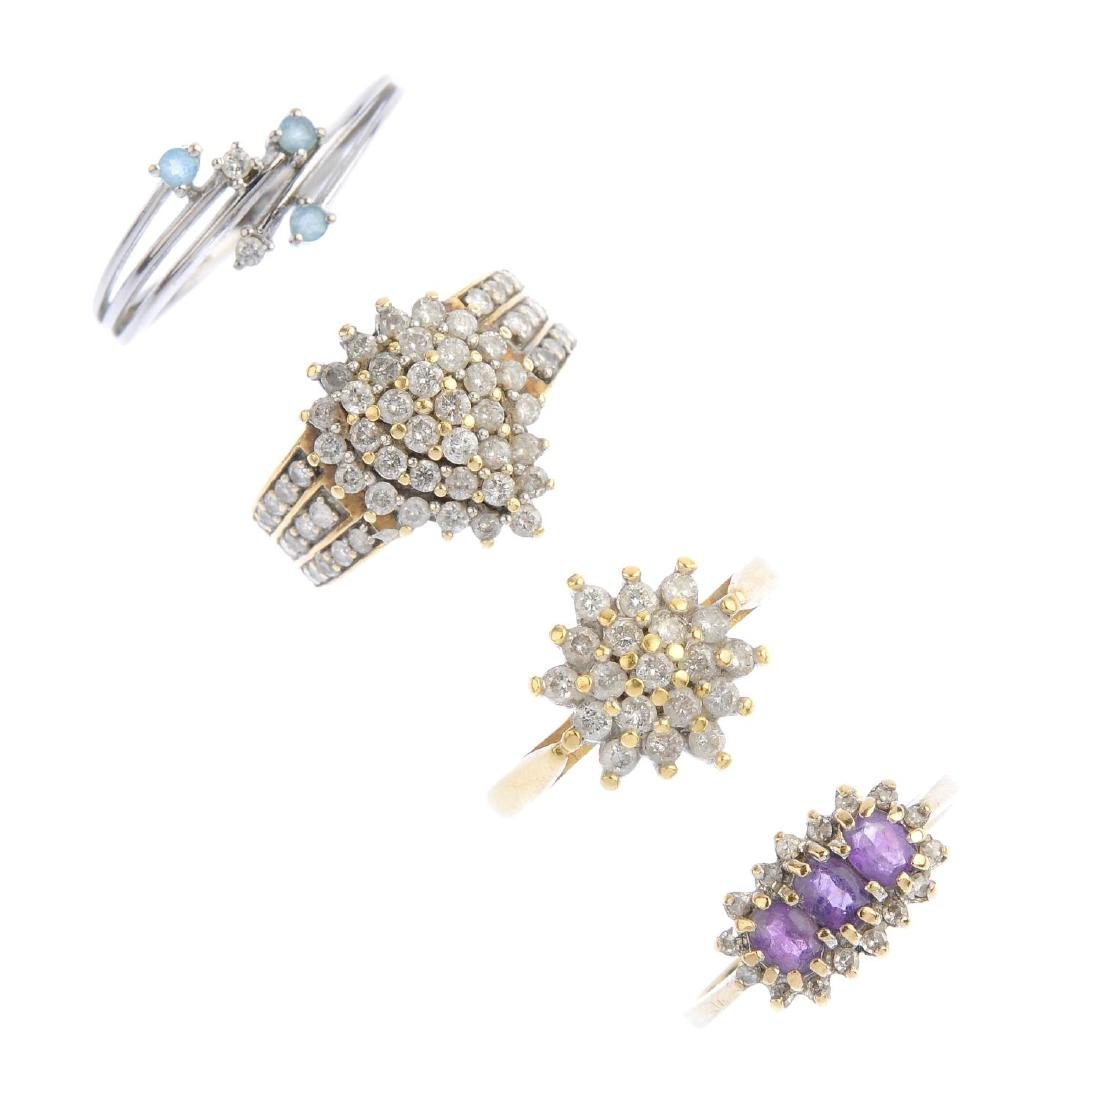 Four diamond and gem-set dress rings. To include a 9ct